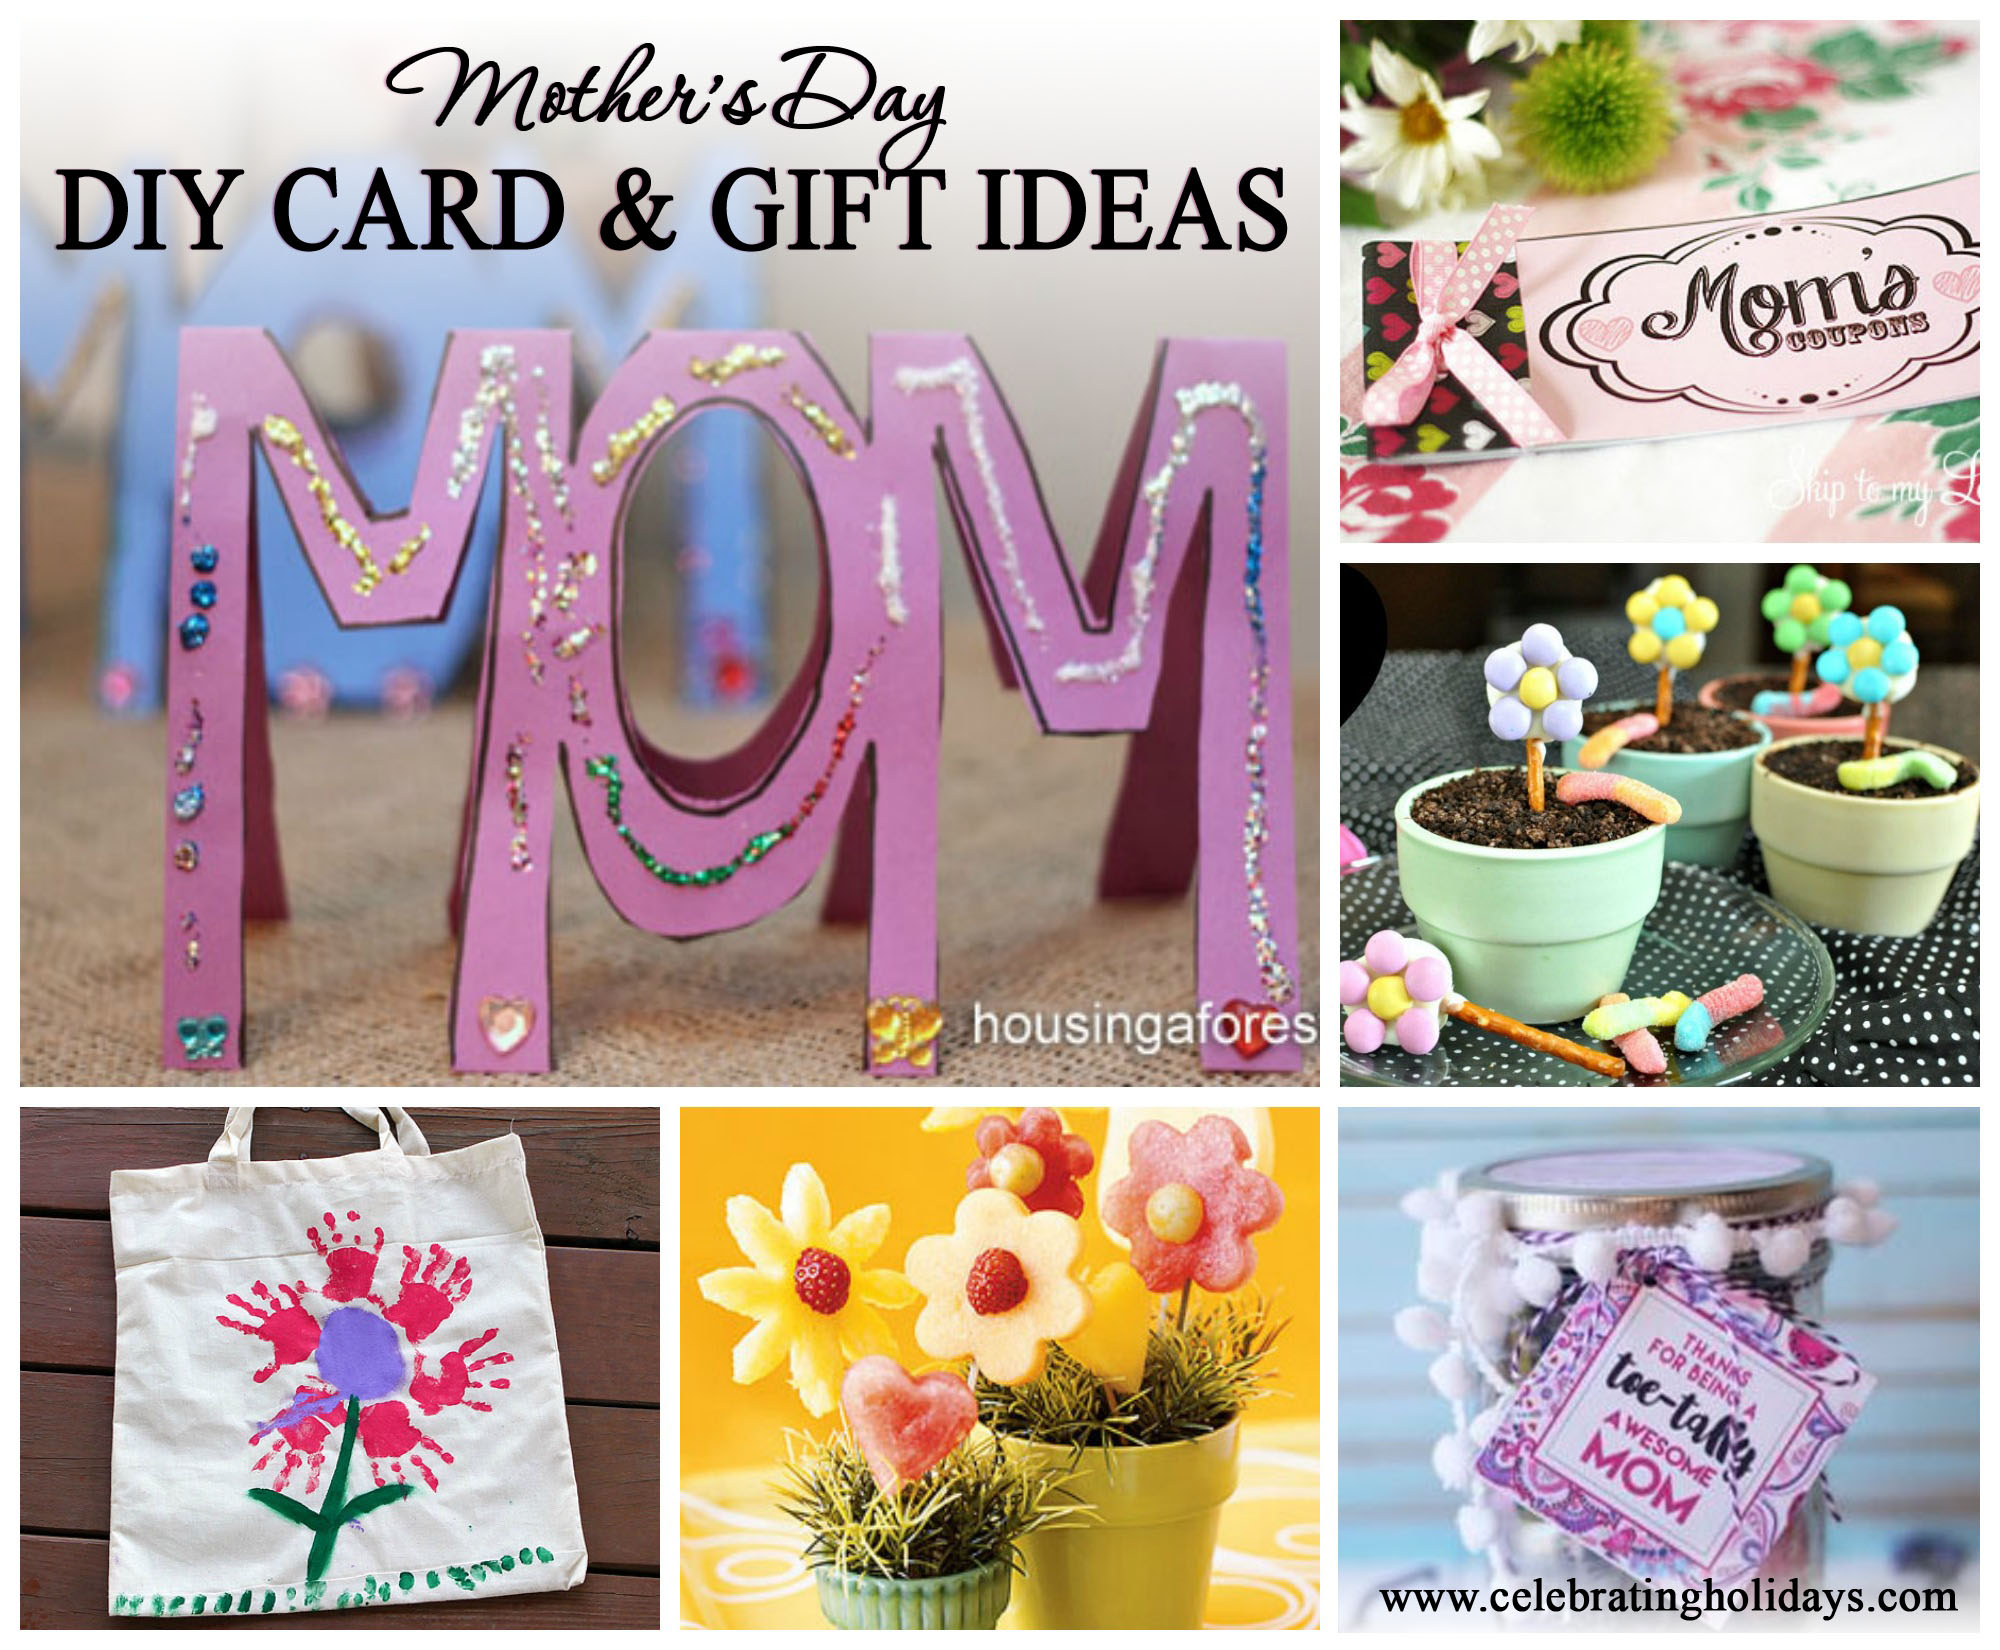 Awesome Diy Mother's Day Gifts Mother S Day Card And Gift Ideas Celebrating Holidays